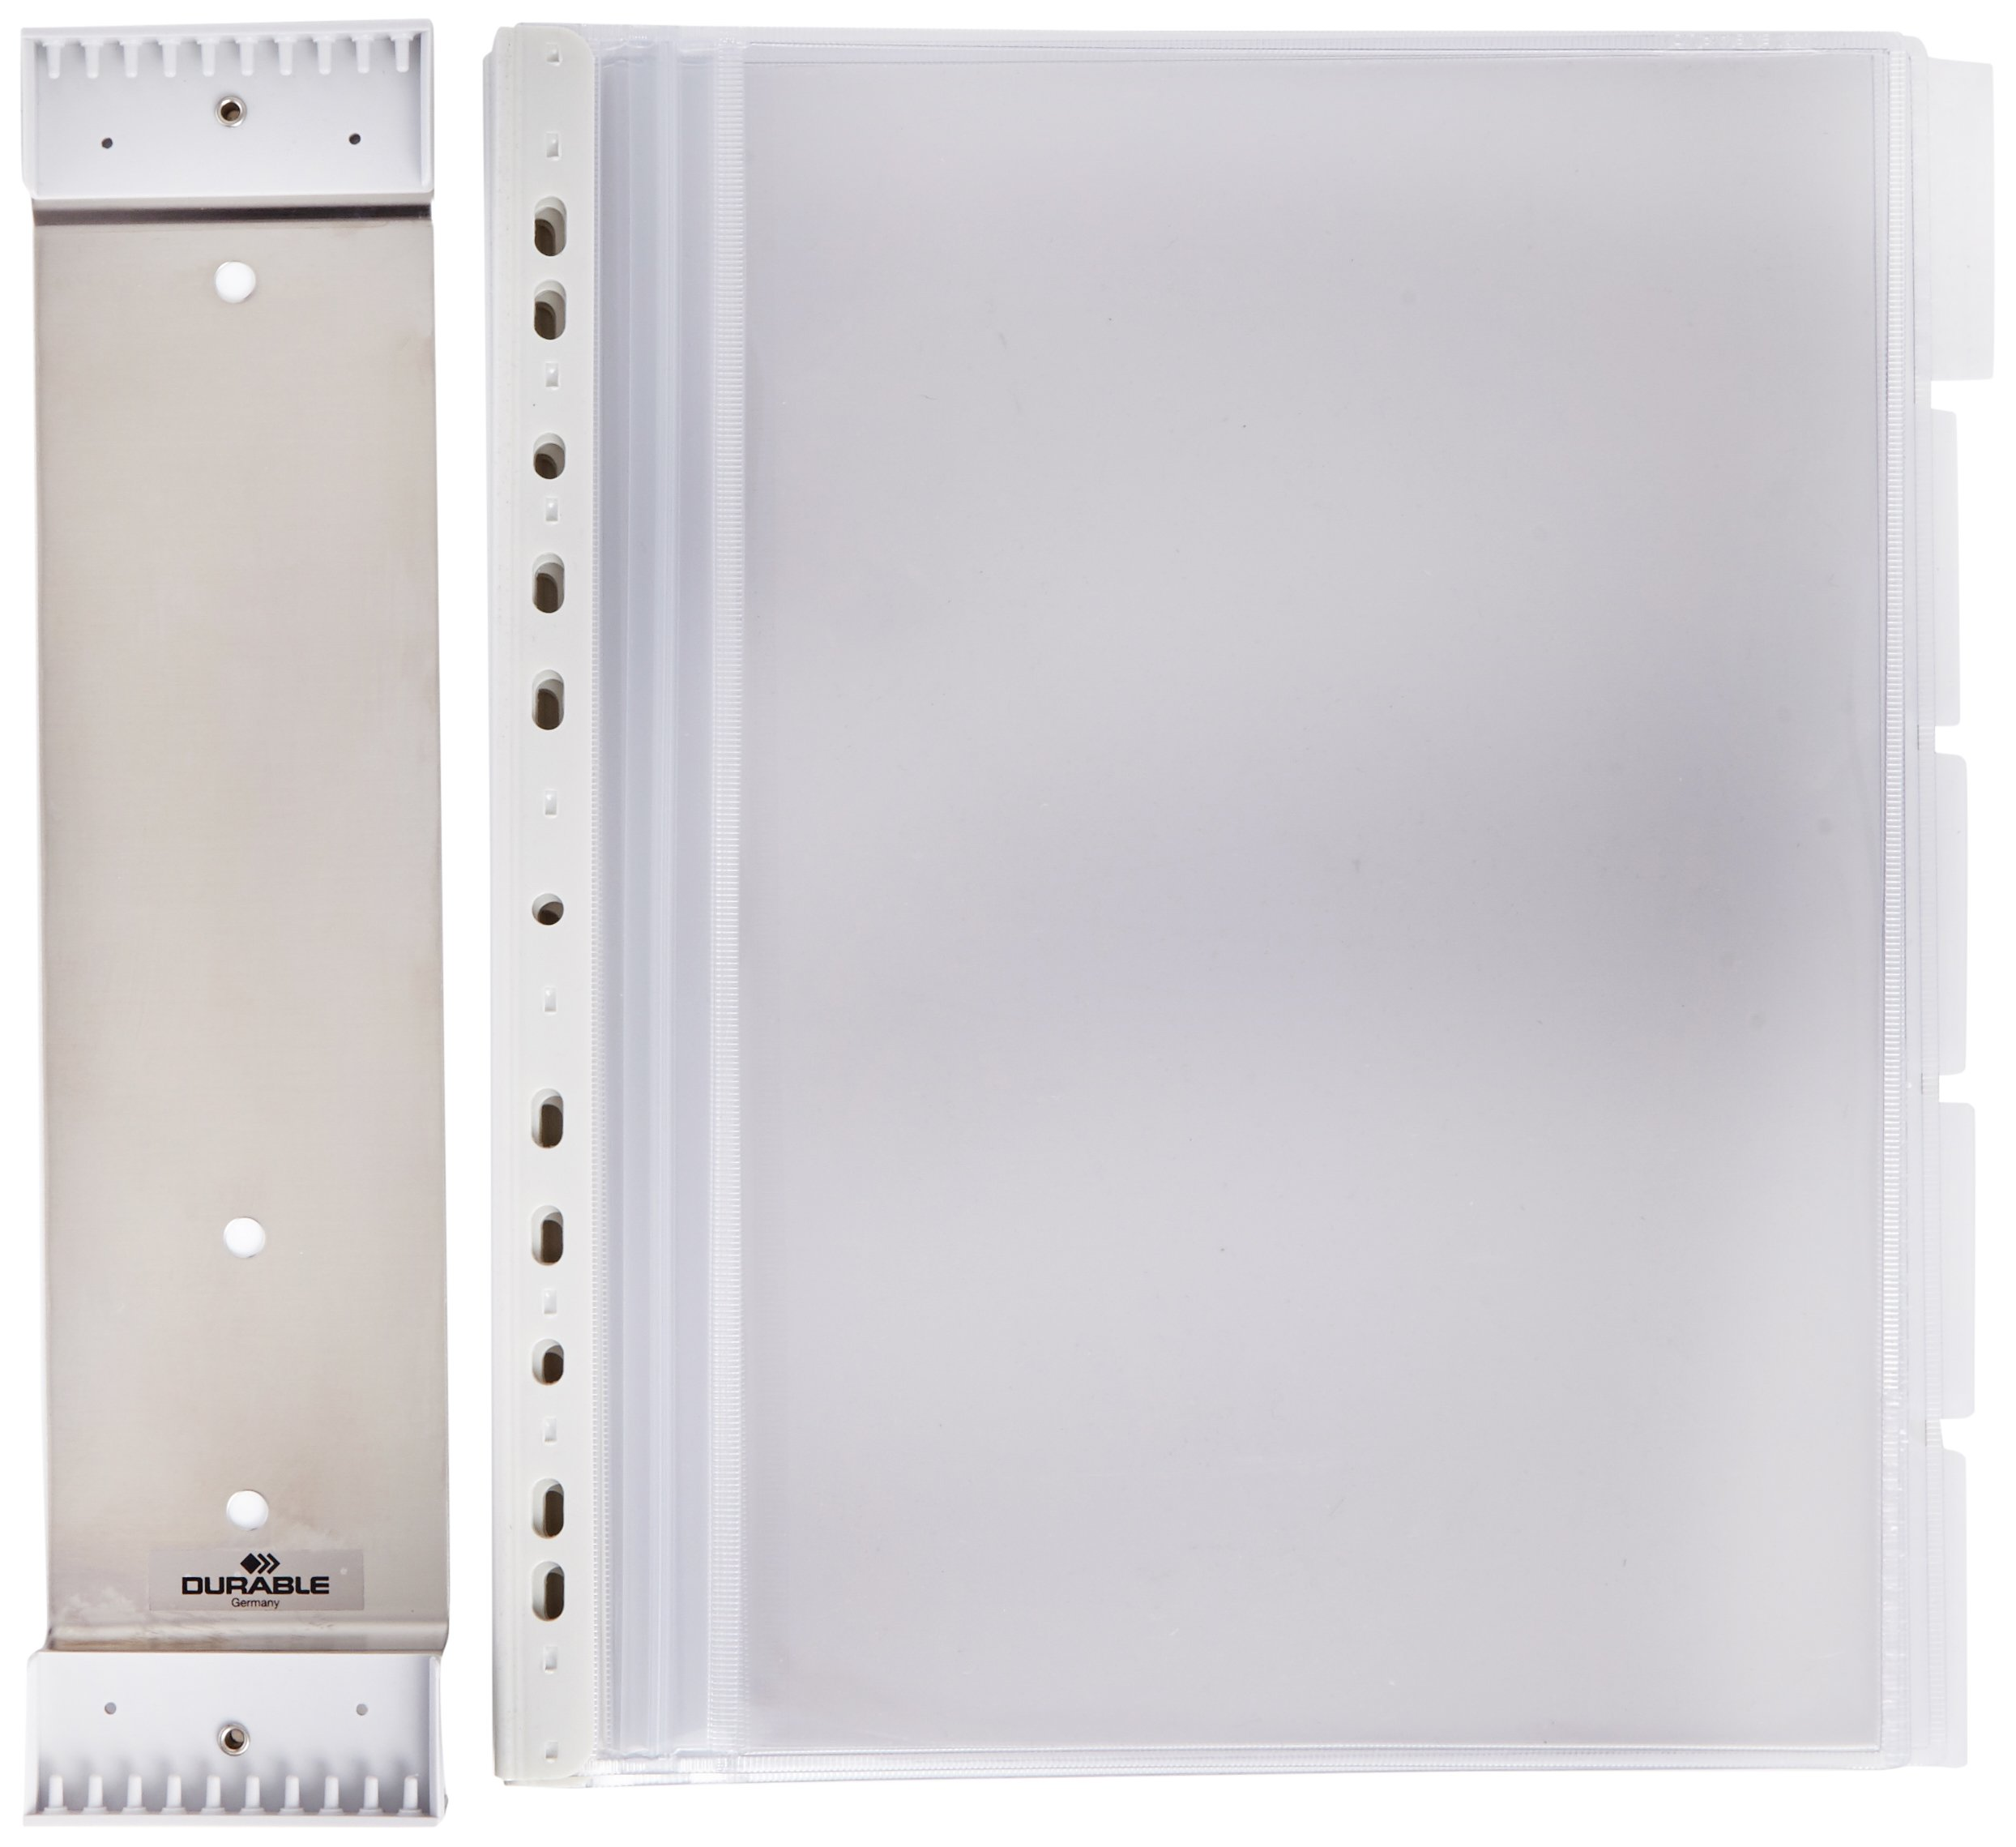 Durable Function Wall Mount Stainless 584300 Display Sheet System / 10 Stainless Steel with 10 Plates, Pack of 1, Metallic Silver